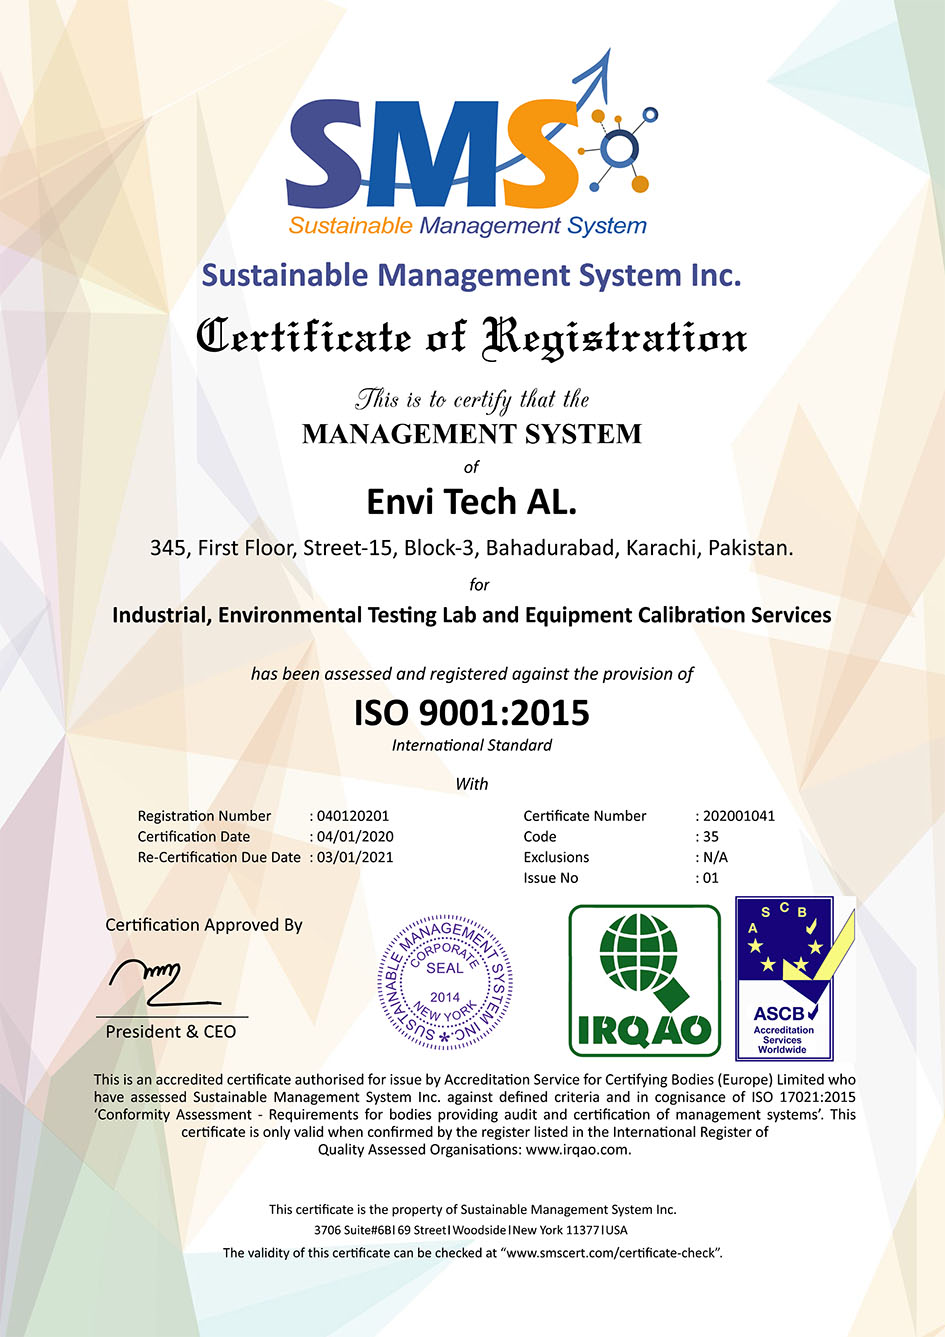 Successfully Qualifies & Received Certificate of ISO 9001:2015